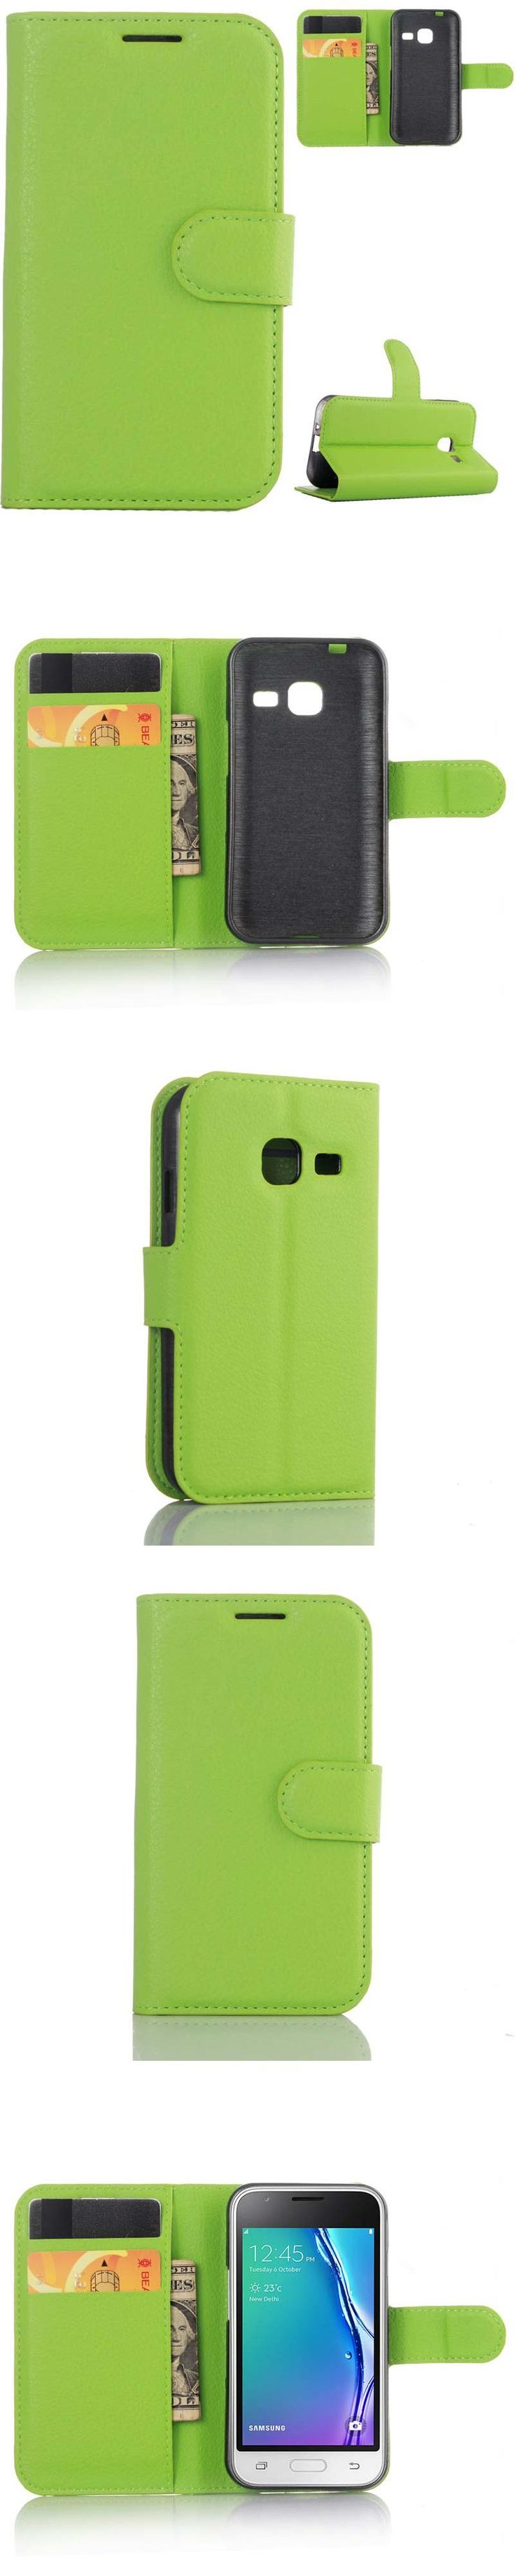 For Samsung J1mini Orignial YINGHUI Magnetic Wallet Leather Phone Case Protective Concise Style Cover Mobile Phone Holster Bag